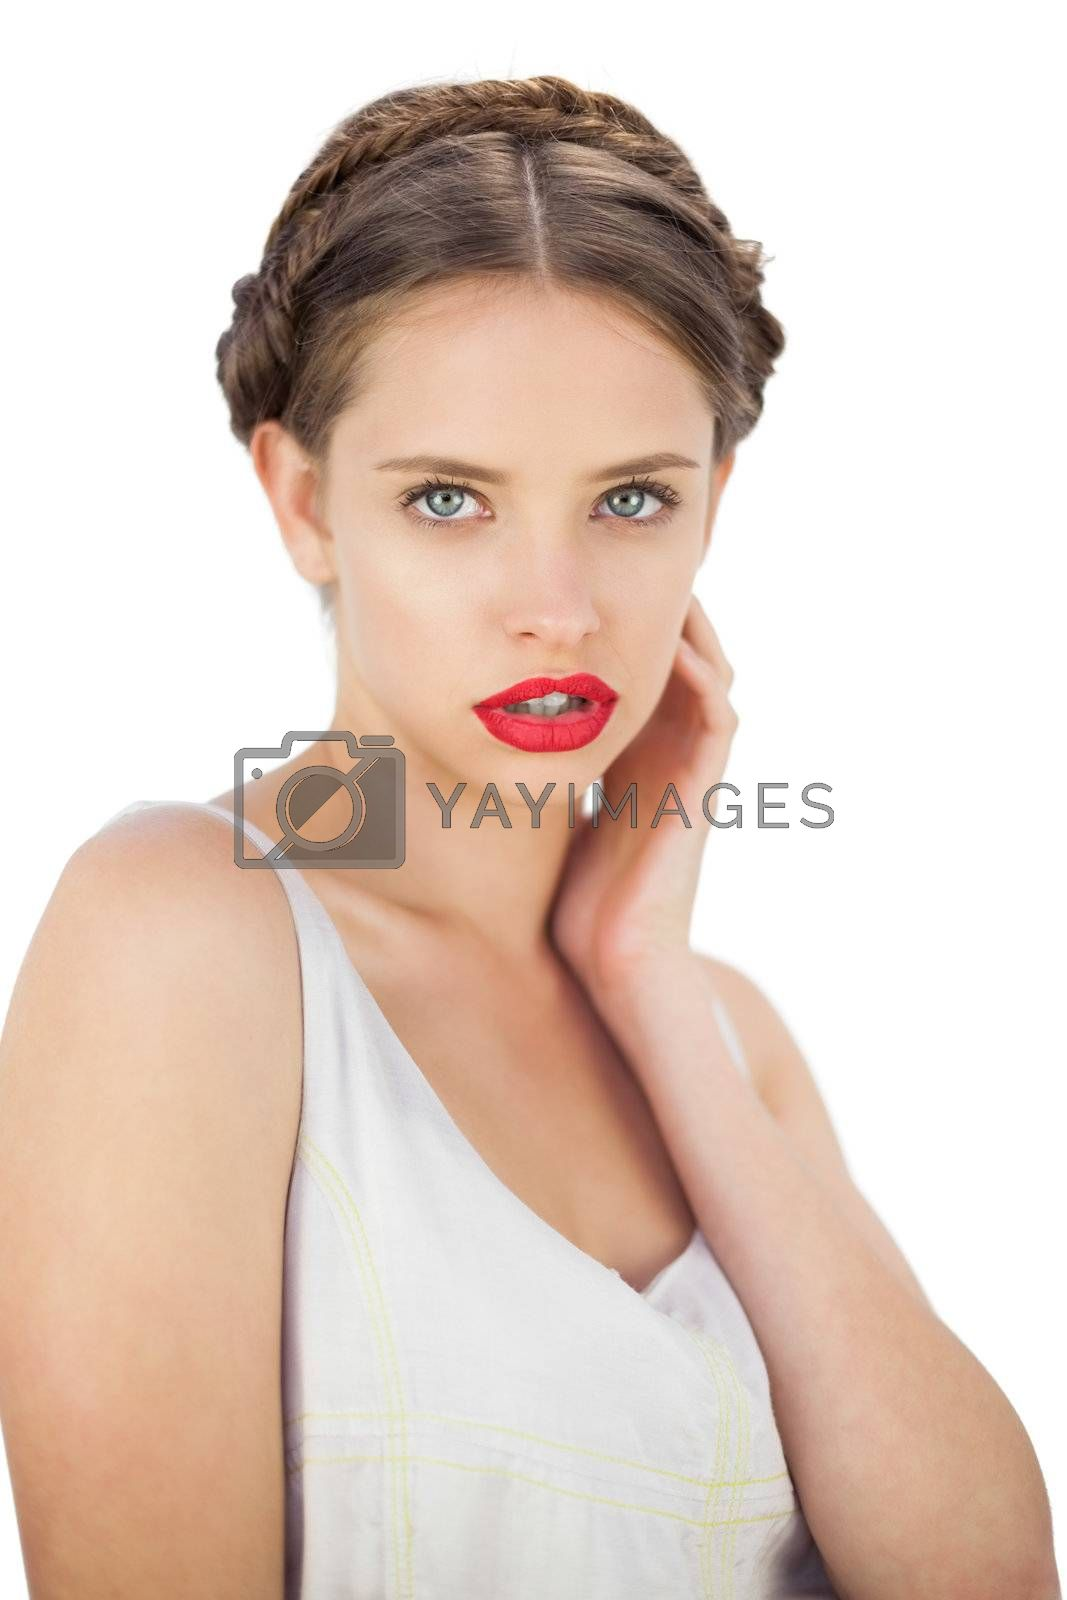 Pensive model in white dress posing withhand on her cheek by Wavebreakmedia